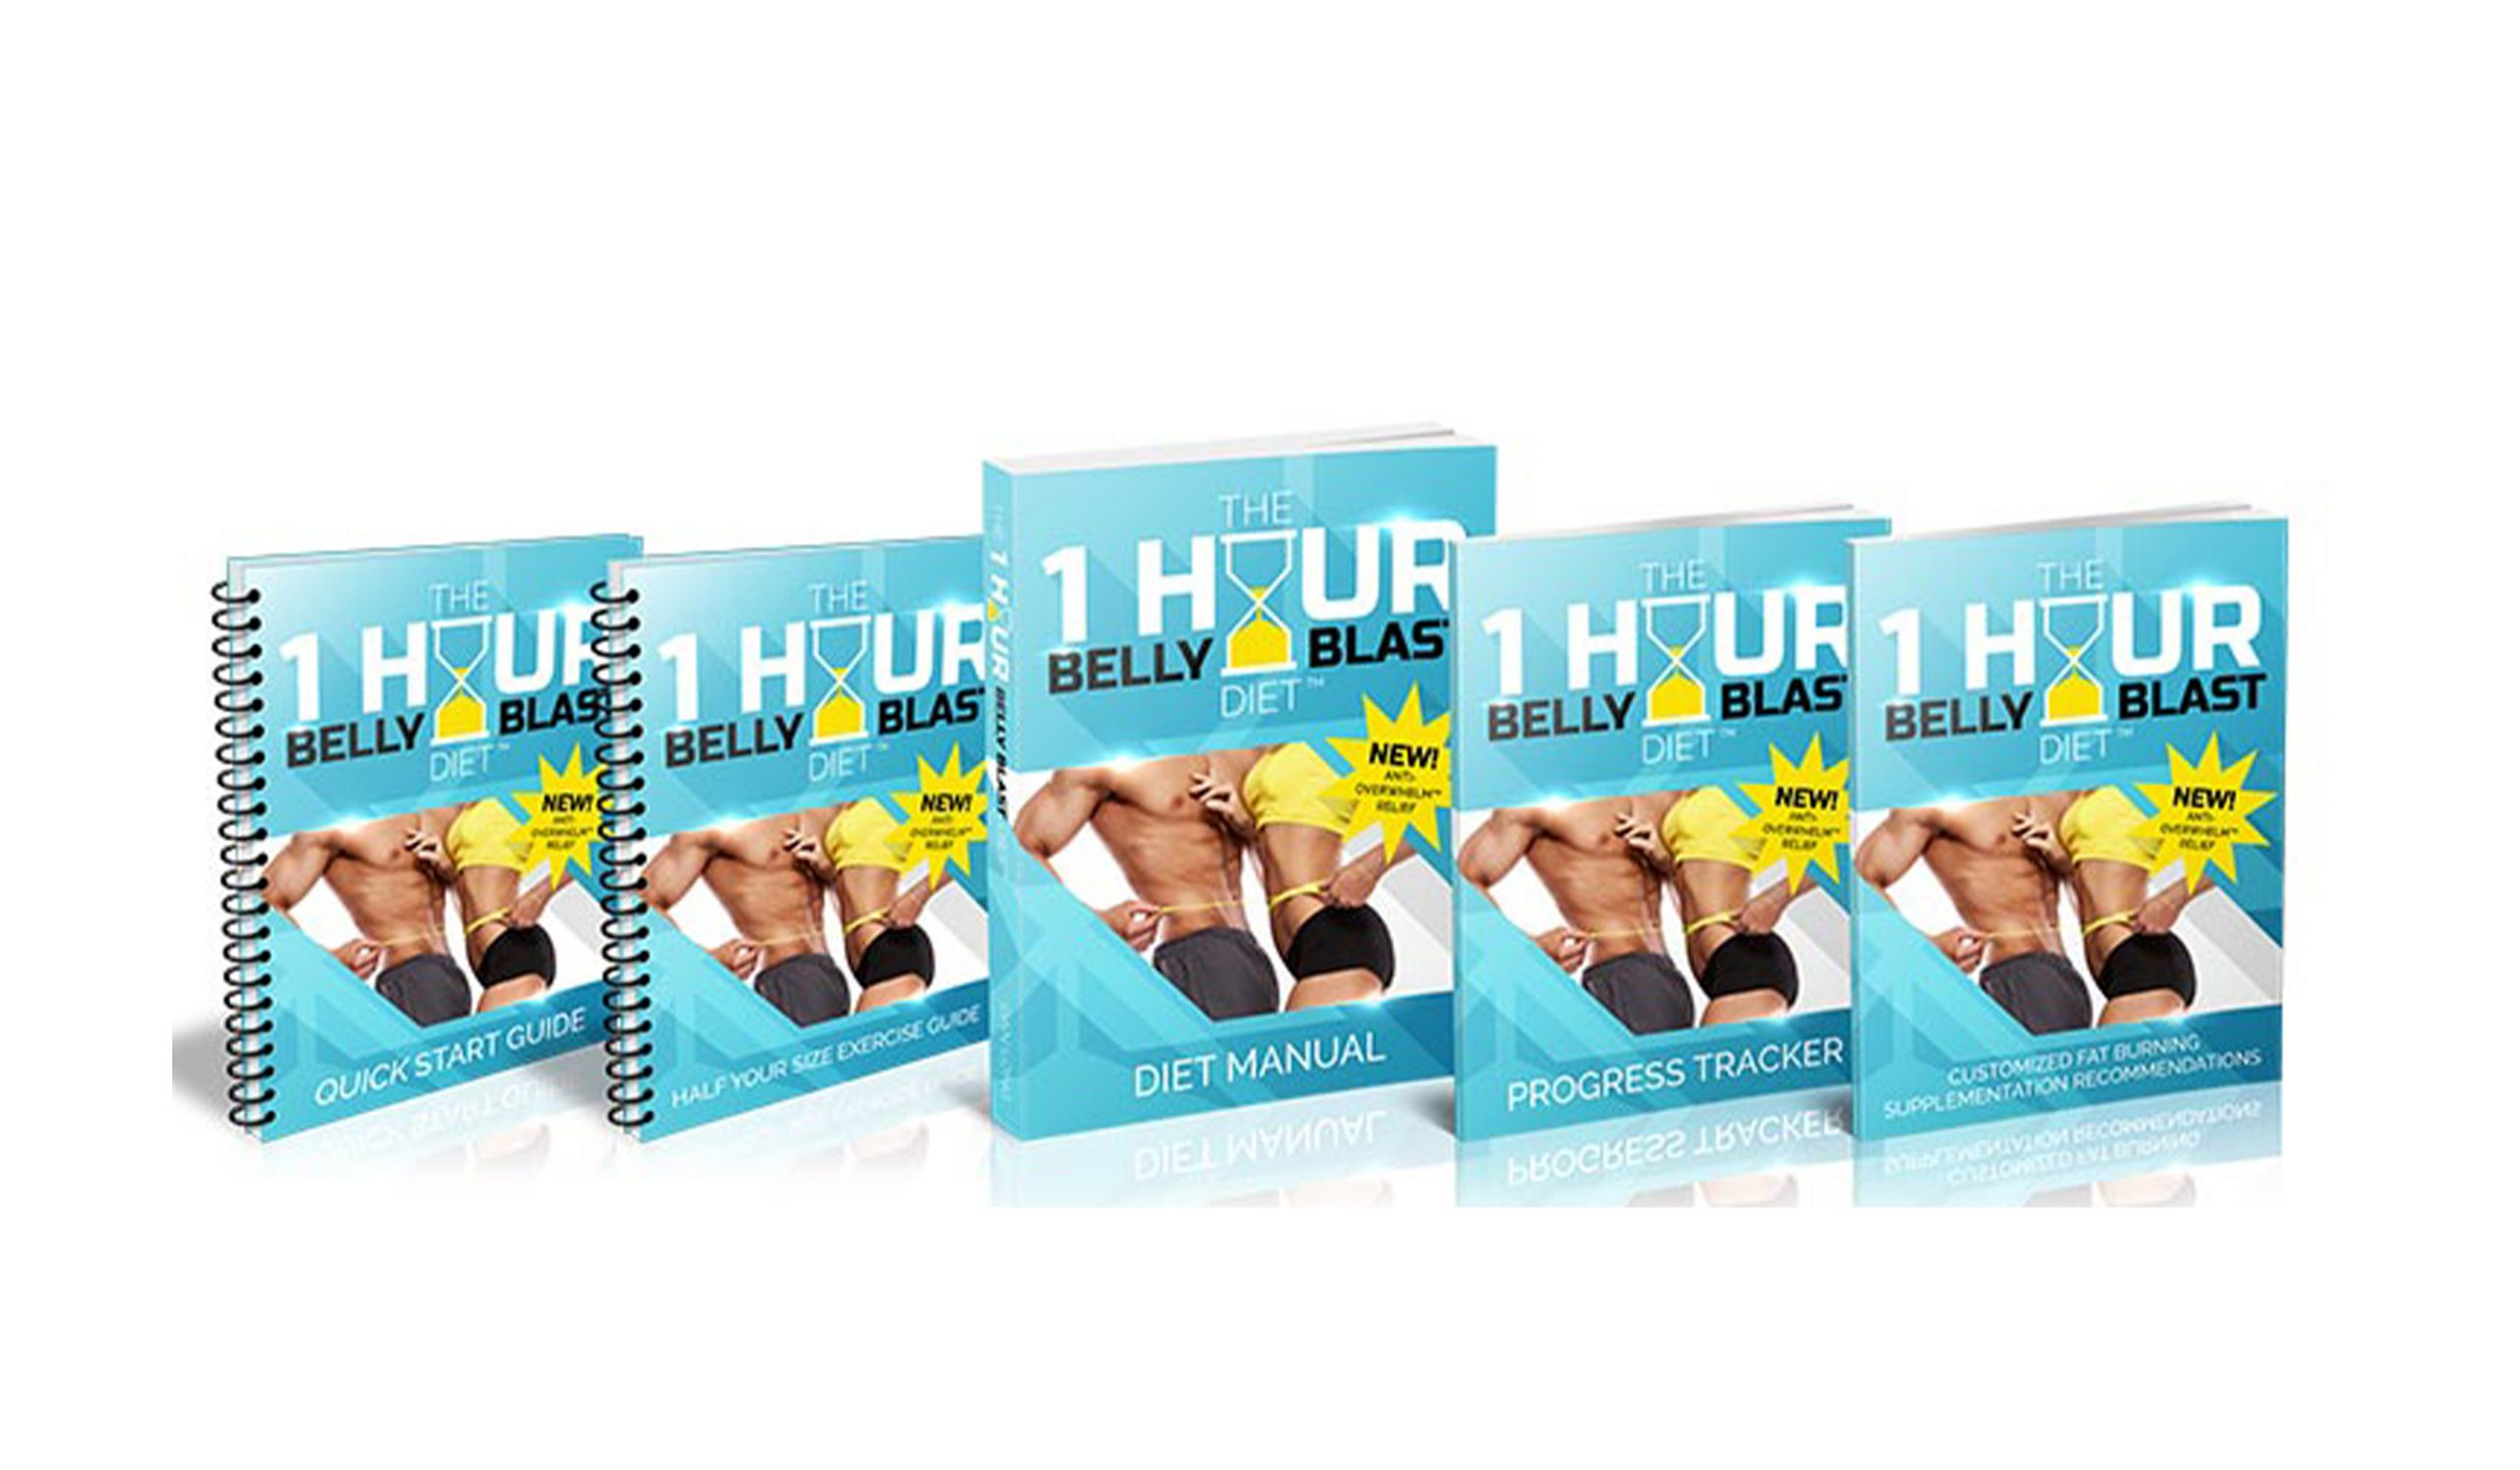 one hour belly blast diet review 1